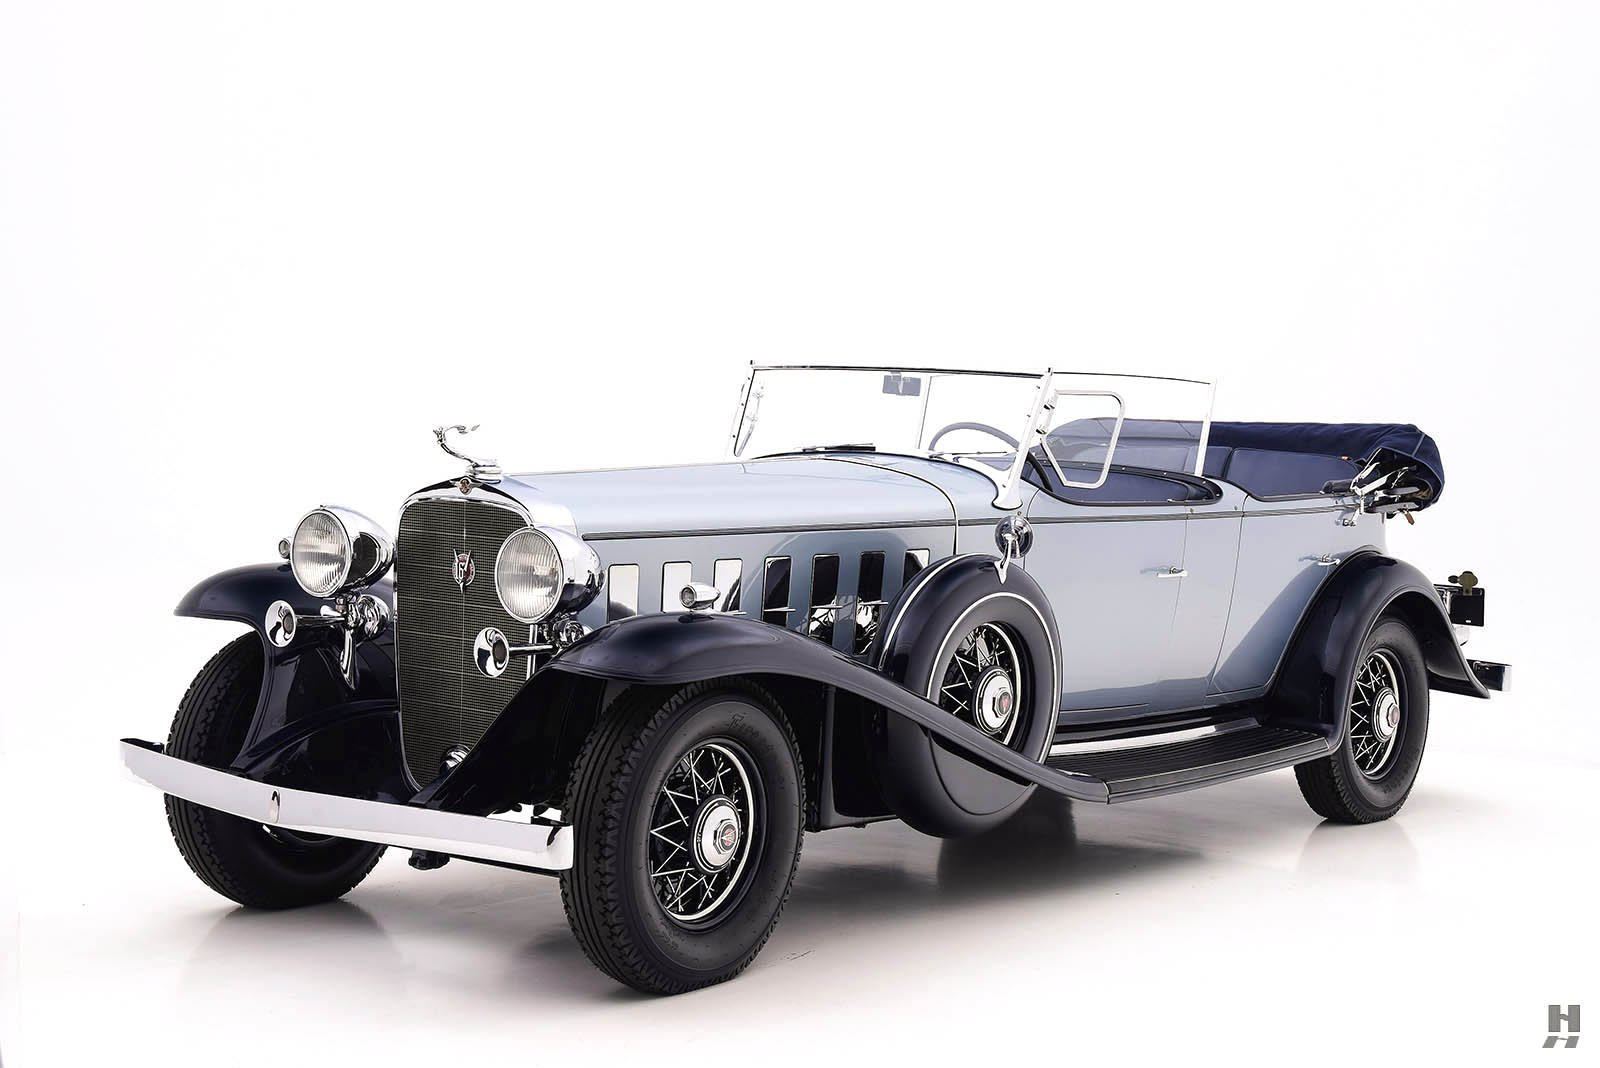 Vehicles For Sale: 1932 Cadillac V-16 Special Phaeton For Sale